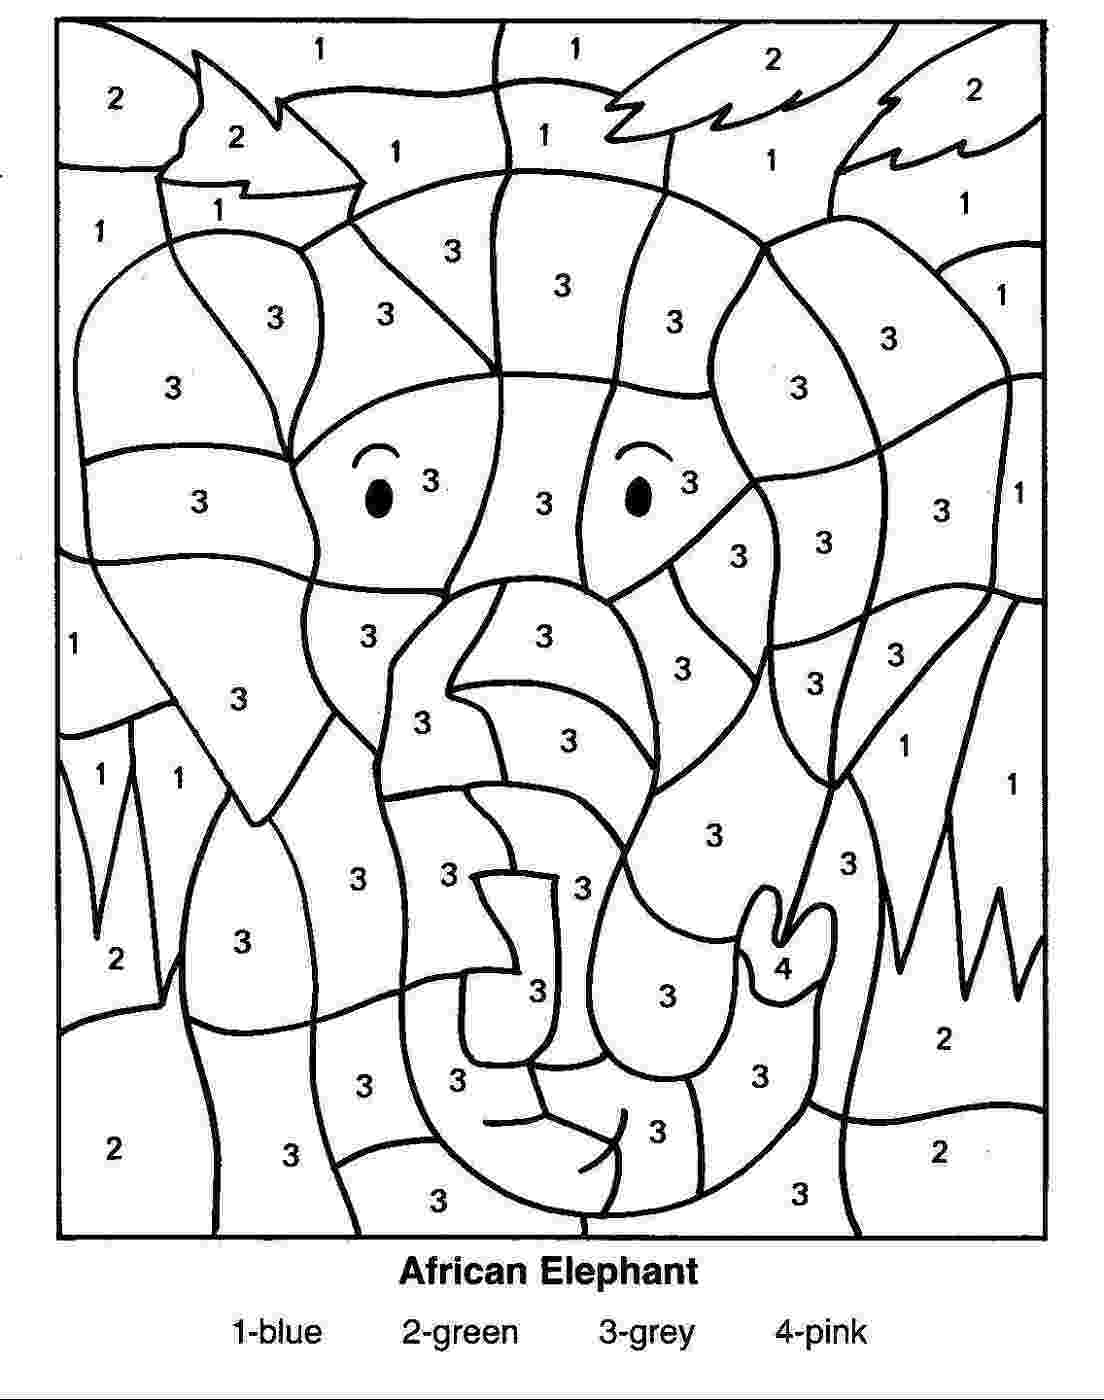 coloring by number worksheets summer color by number worksheets mamas learning corner by worksheets number coloring